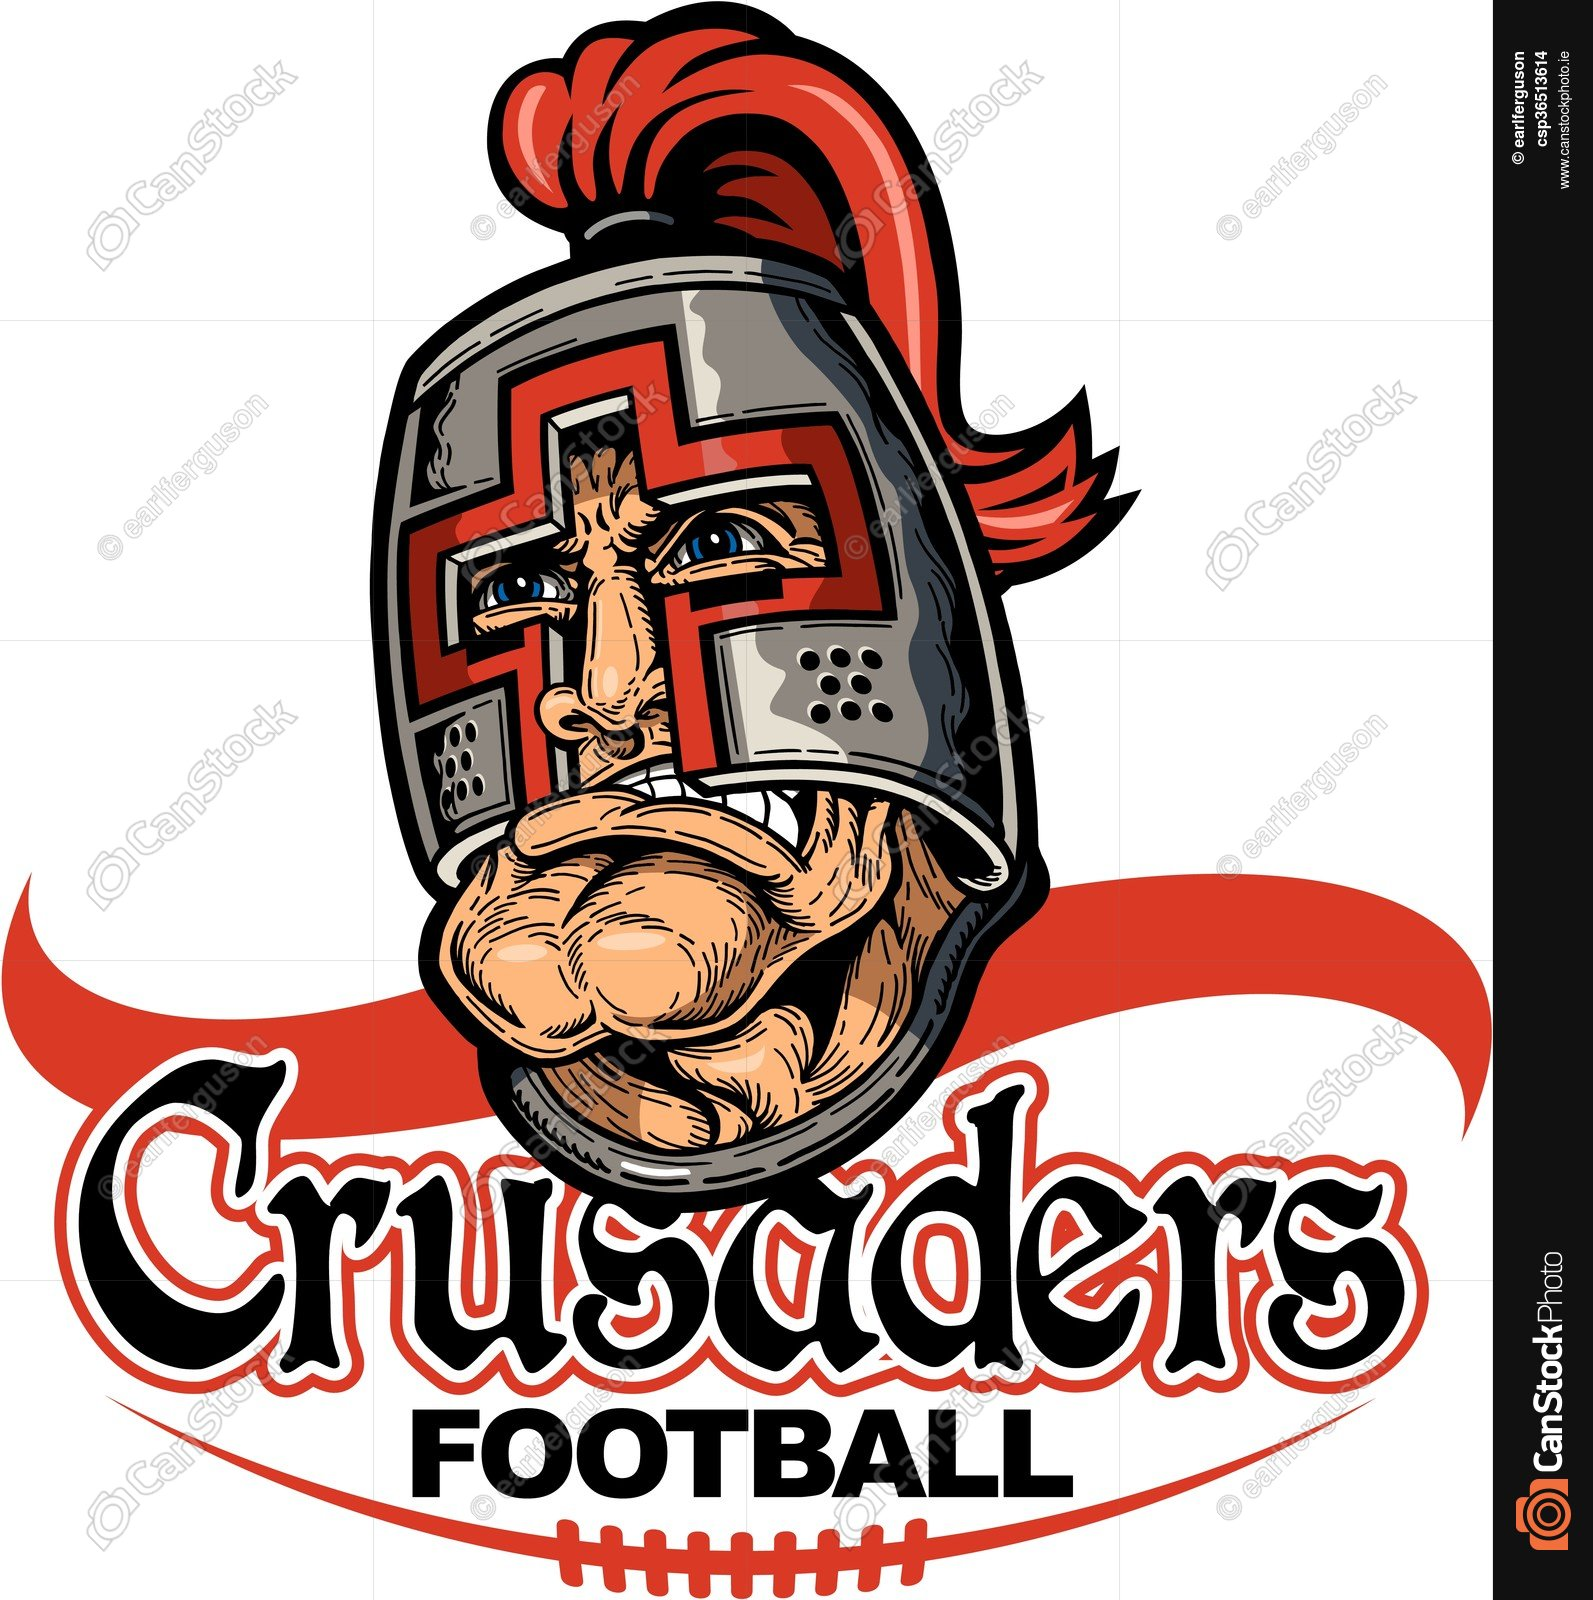 1593x1600 Crusaders Football Team Design With Mascot And Laces For Vector